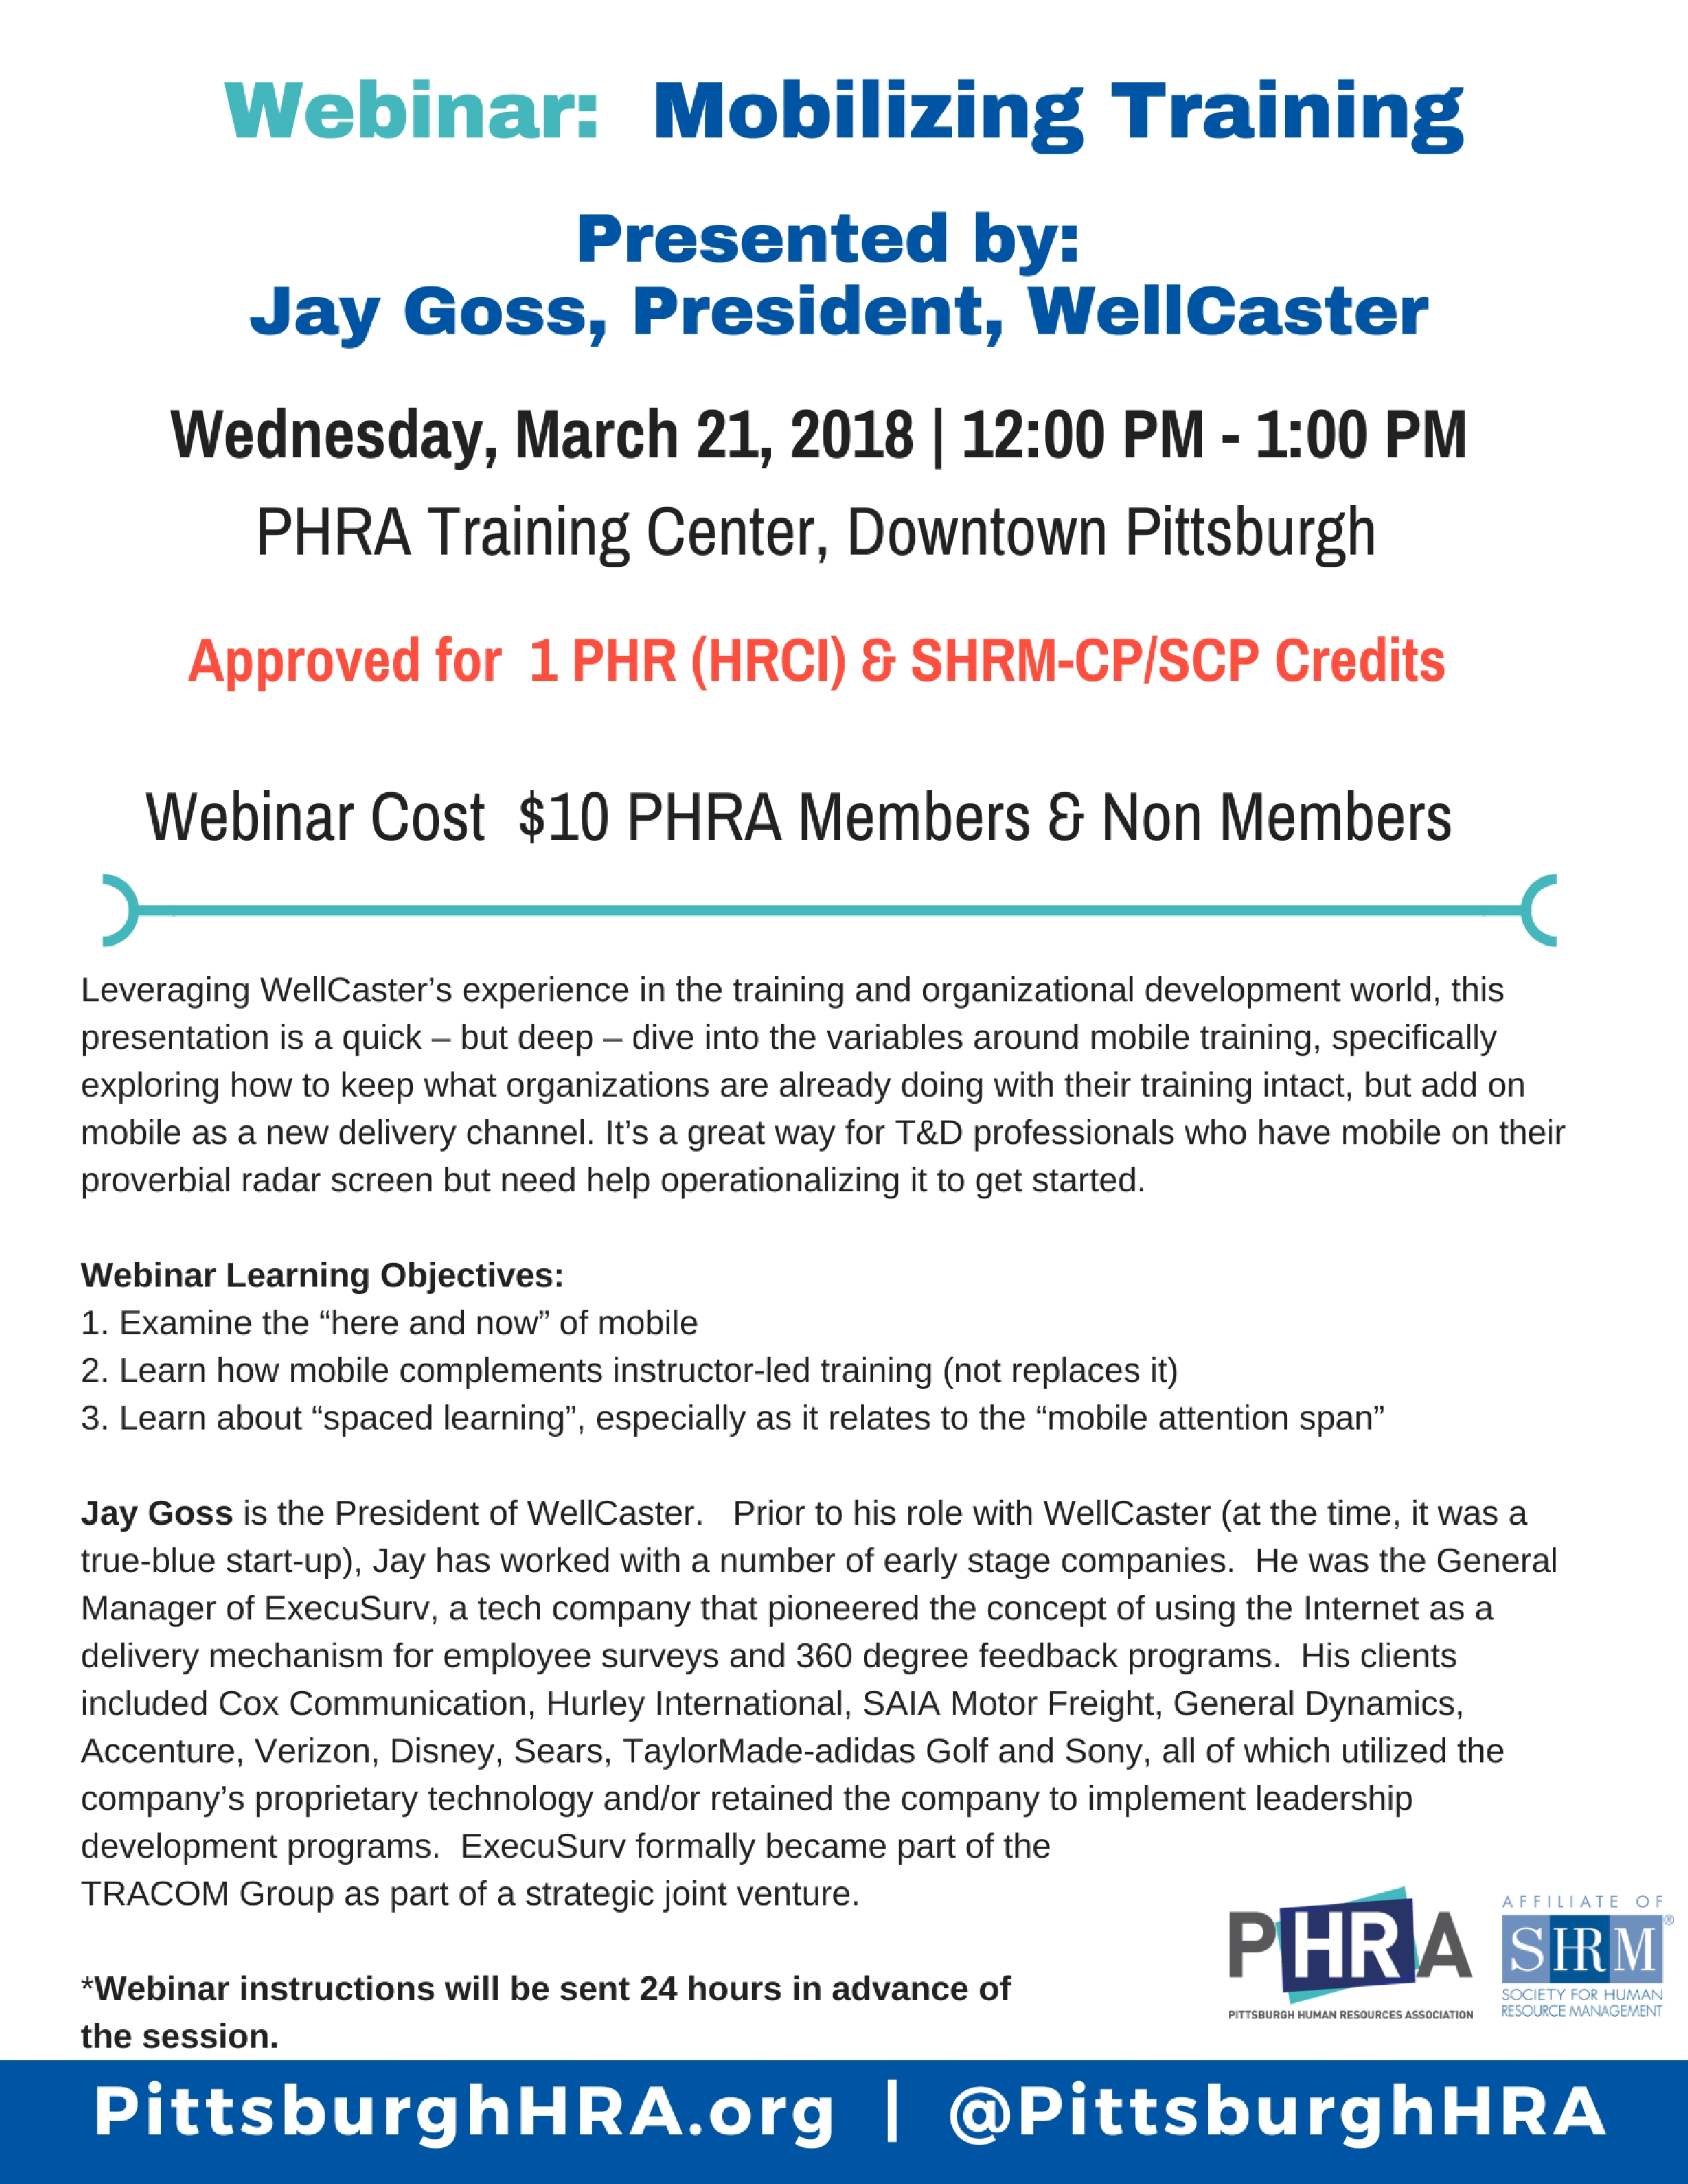 Mobilizing training pittsburgh human resources association about the presenter jay goss is the president of wellcaster prior to his role with wellcaster at the time it was a true blue start up jay has worked xflitez Image collections